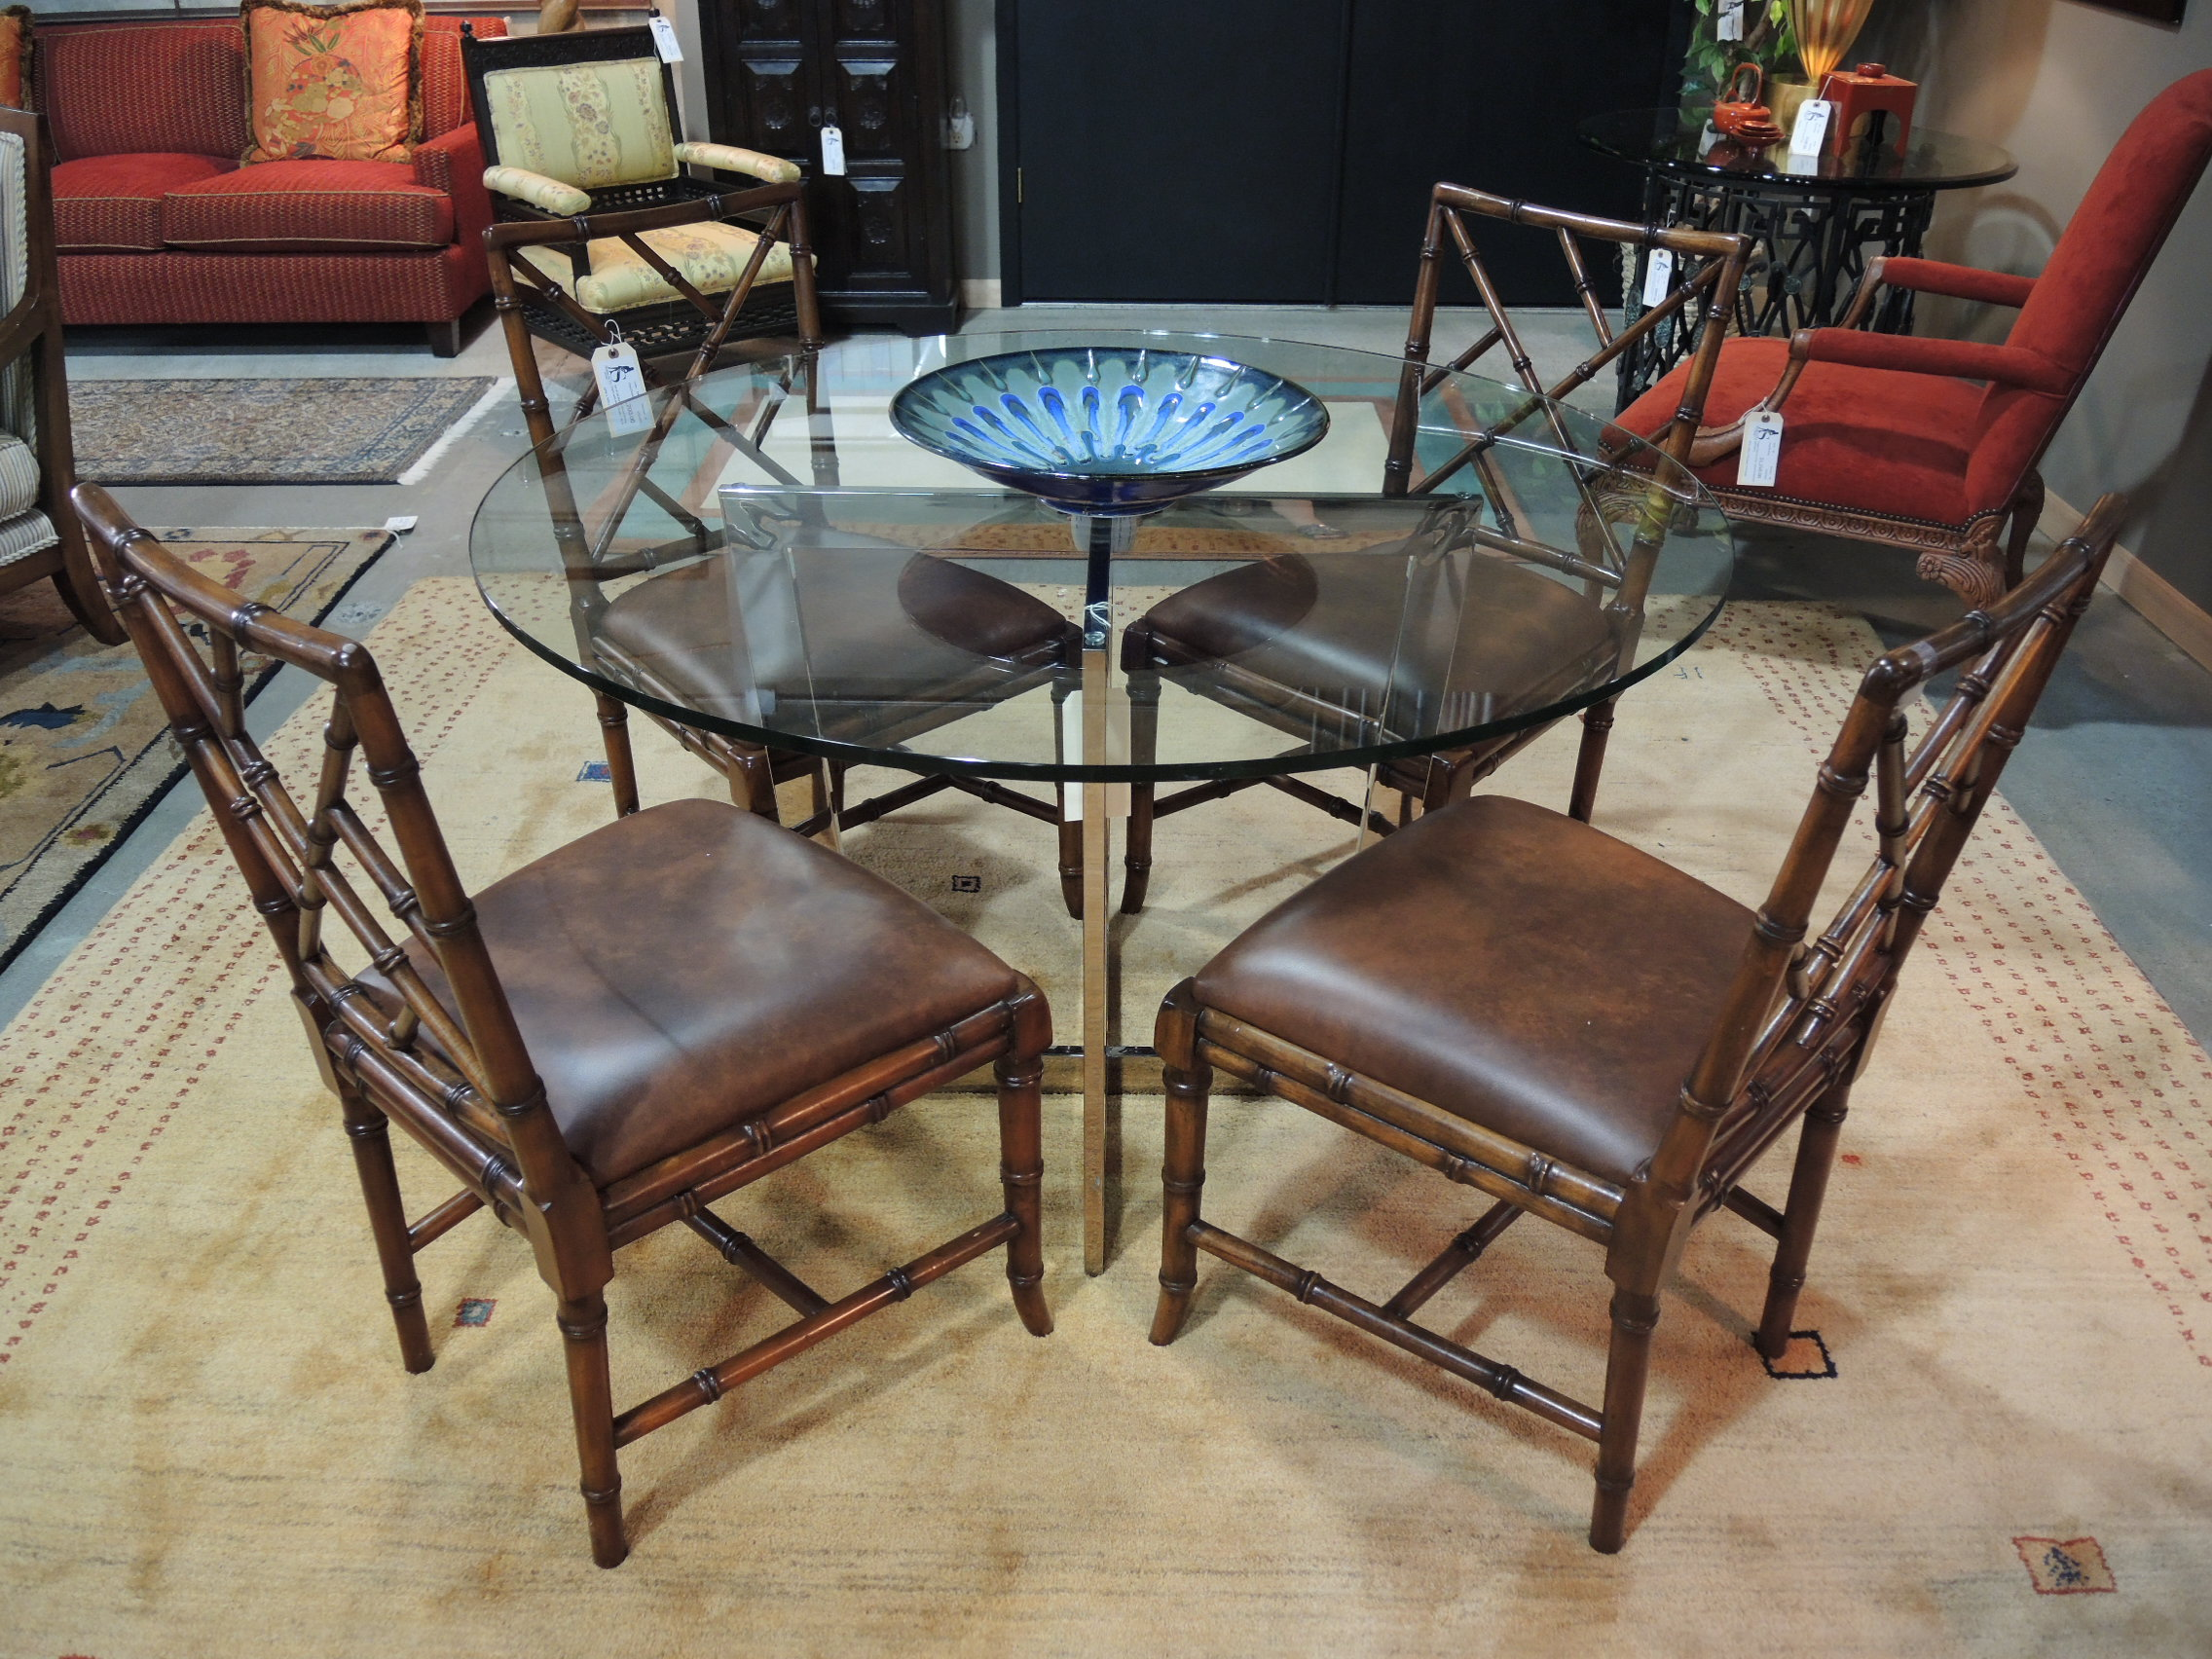 Bamboo dining table set -  Latest Arrivals Tuesday May 12th